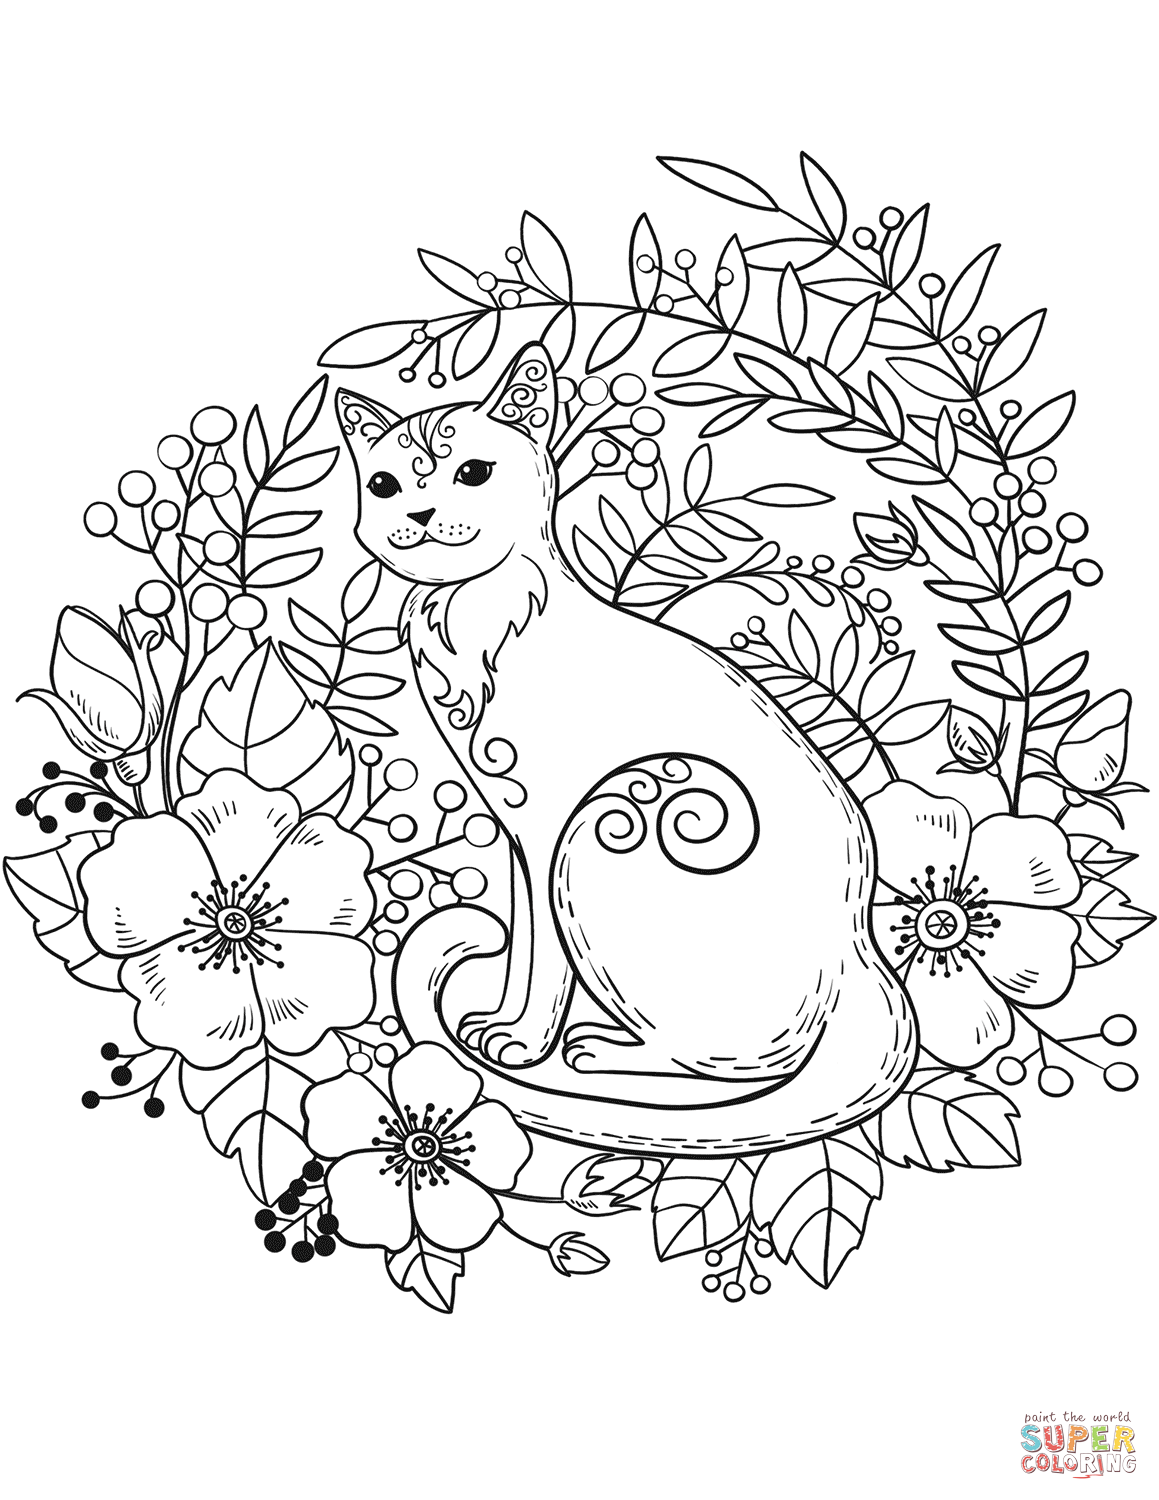 coloring worksheets cat cat coloring page 2 super simple coloring worksheets cat